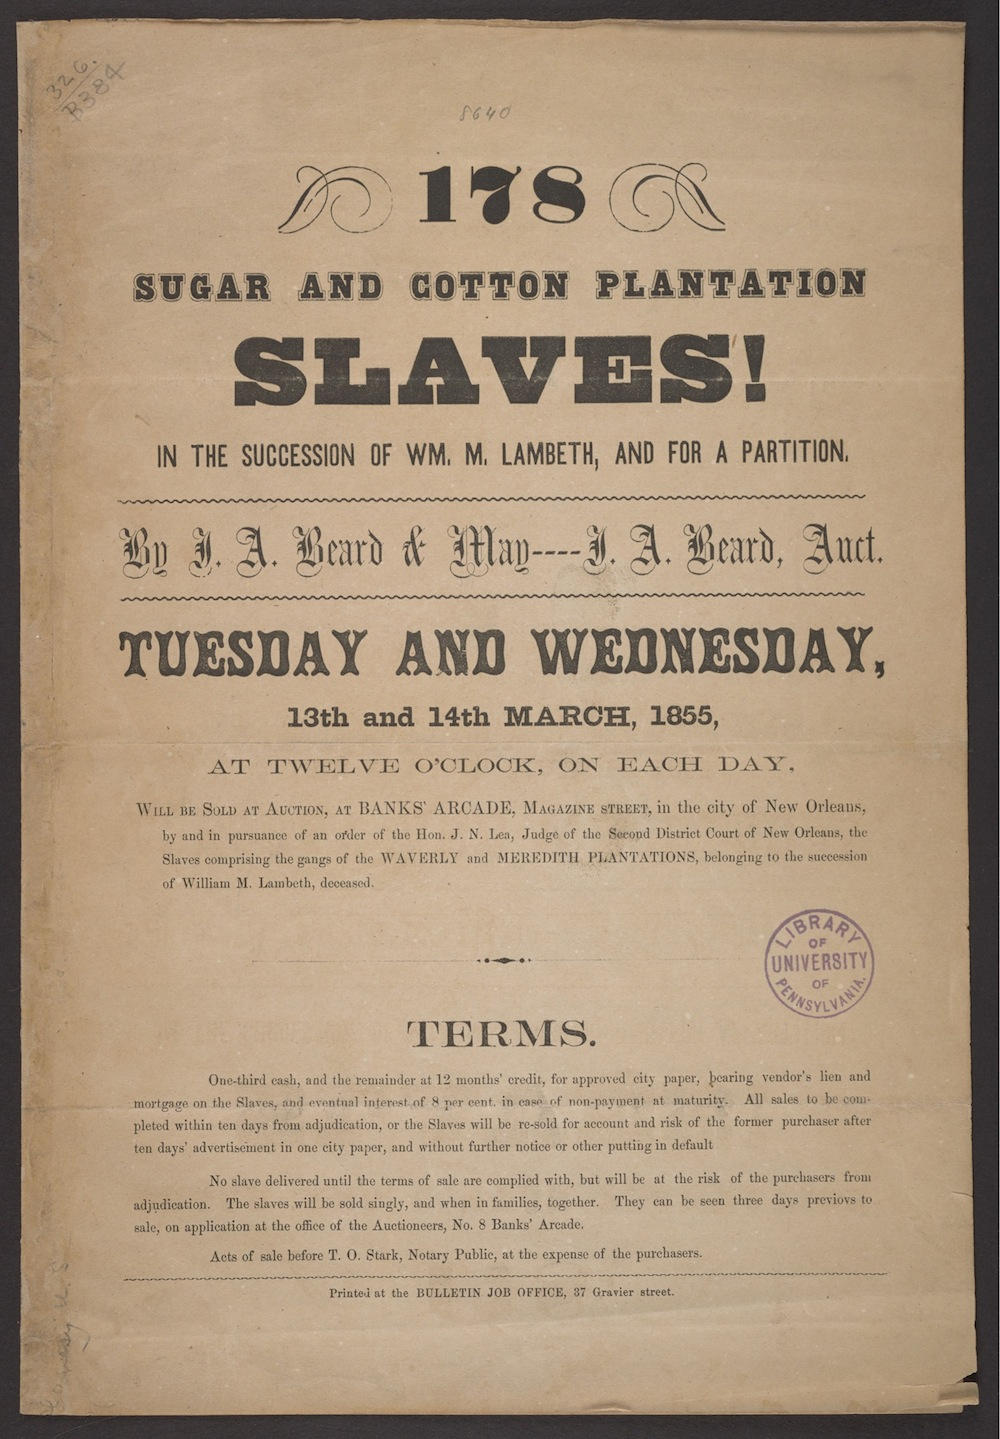 An 1855 pamphlet from J.A. Beard & May in New Orleans (University of Pennsylvania Libraries)